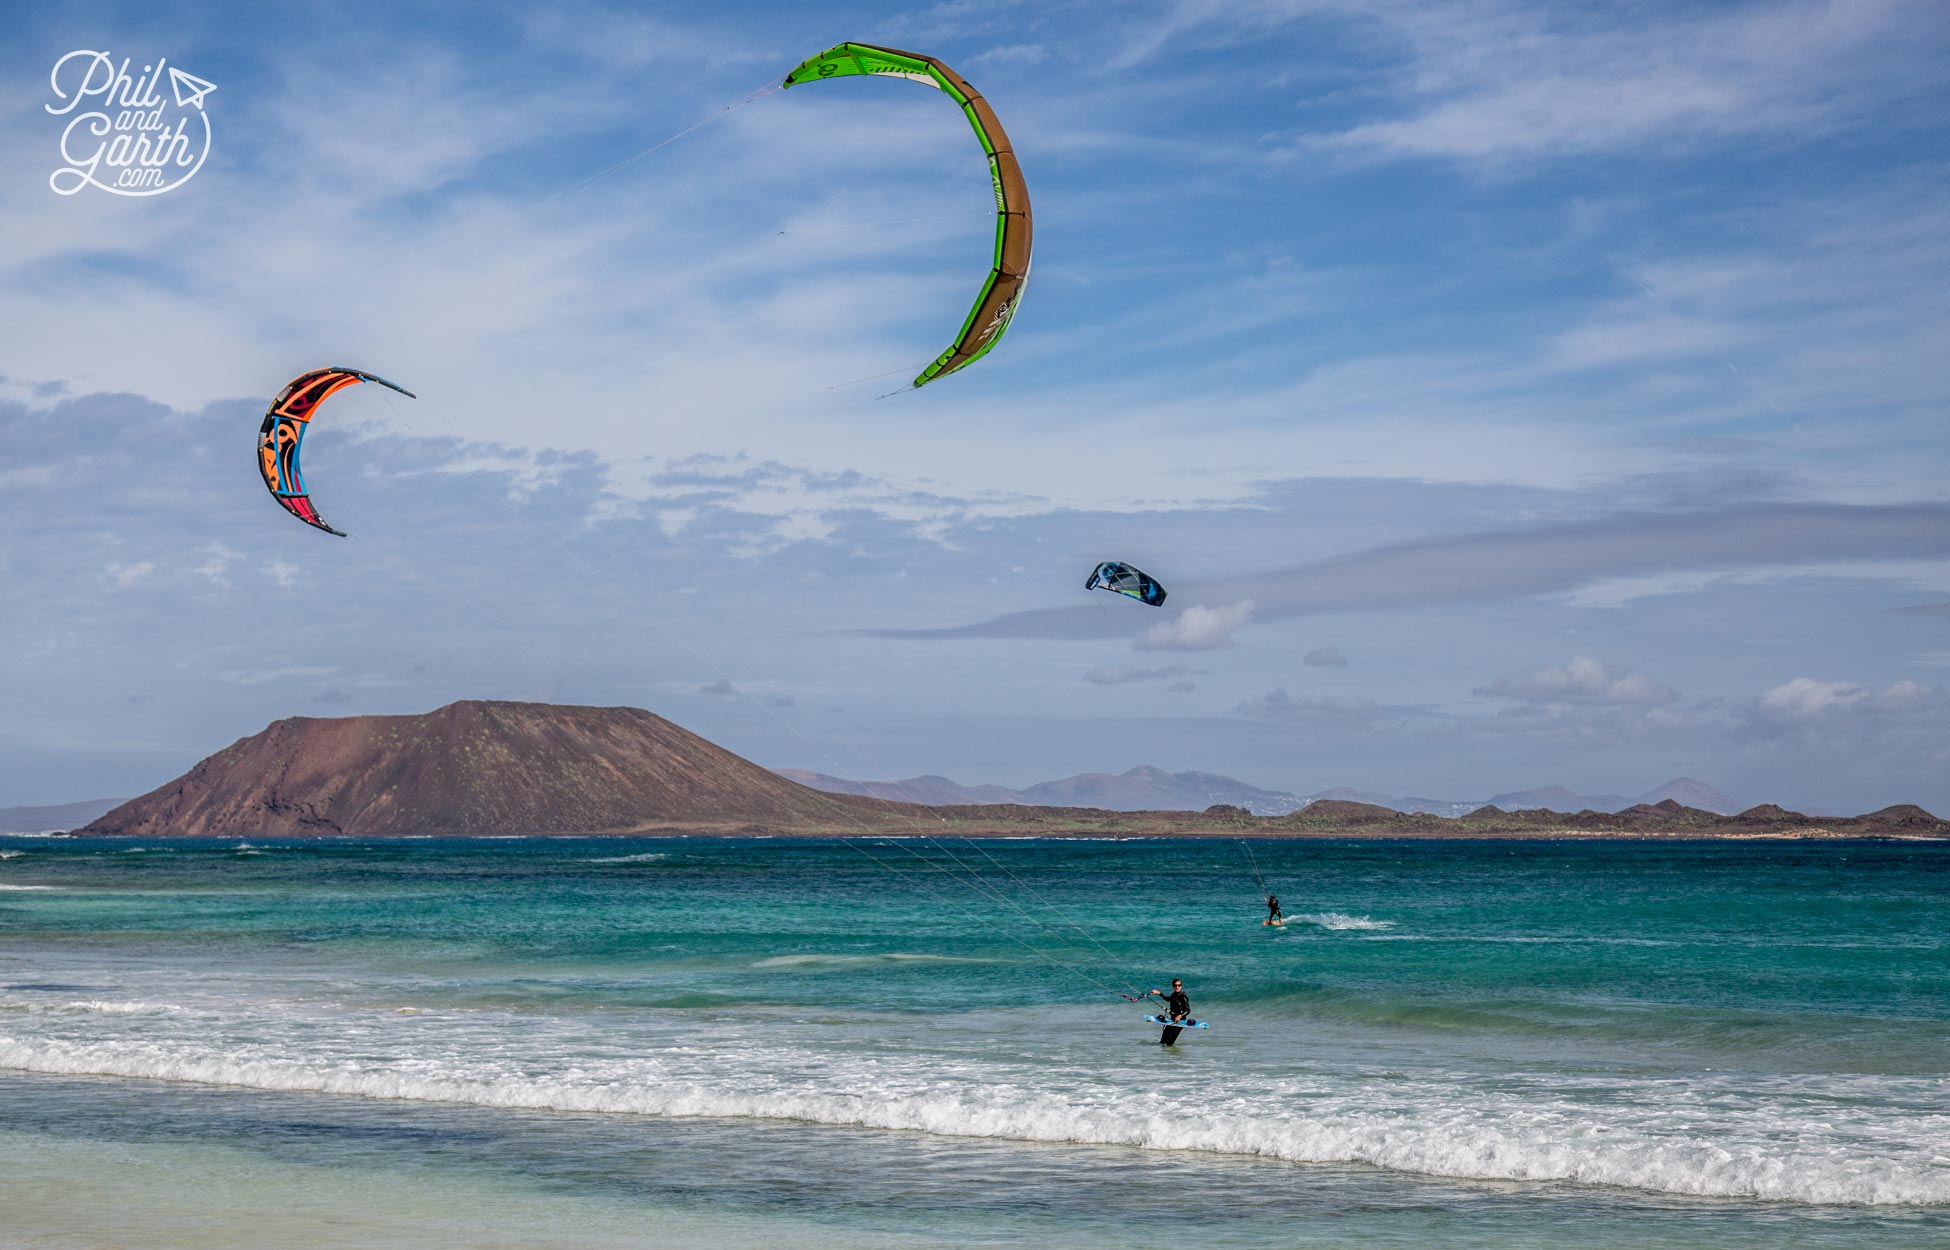 Kite surfers on Grandes Playas with the uninhabited island of Los Lobos in the background